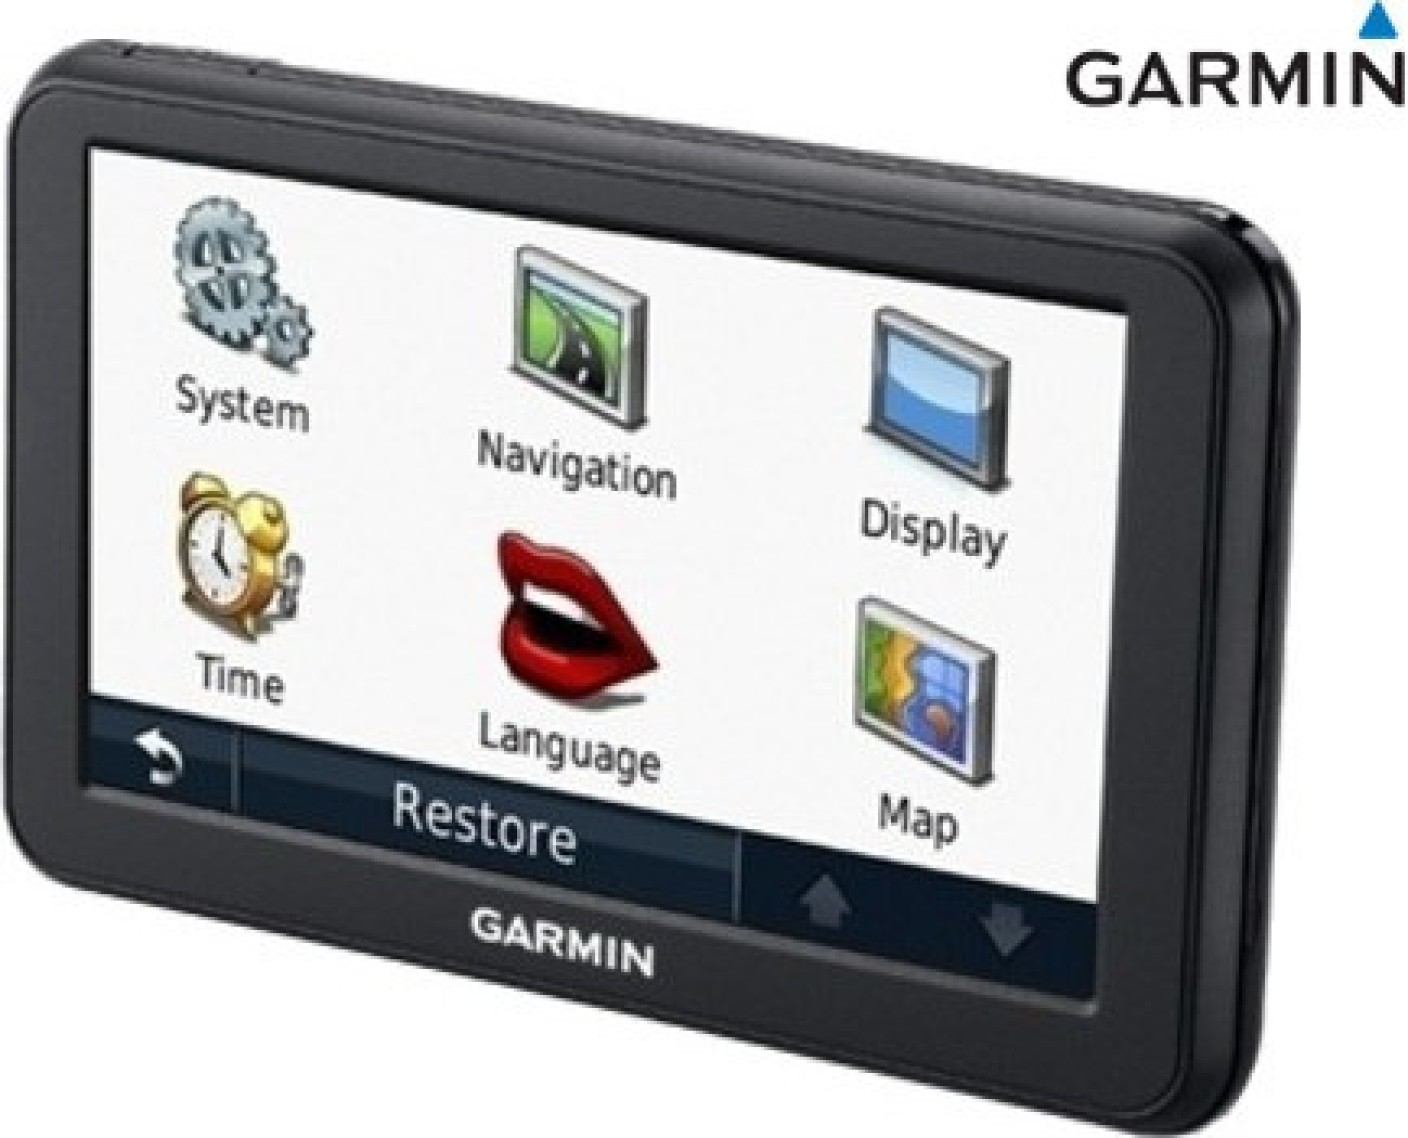 Garmin nuvi 50 gps / B and b theaters dodge city